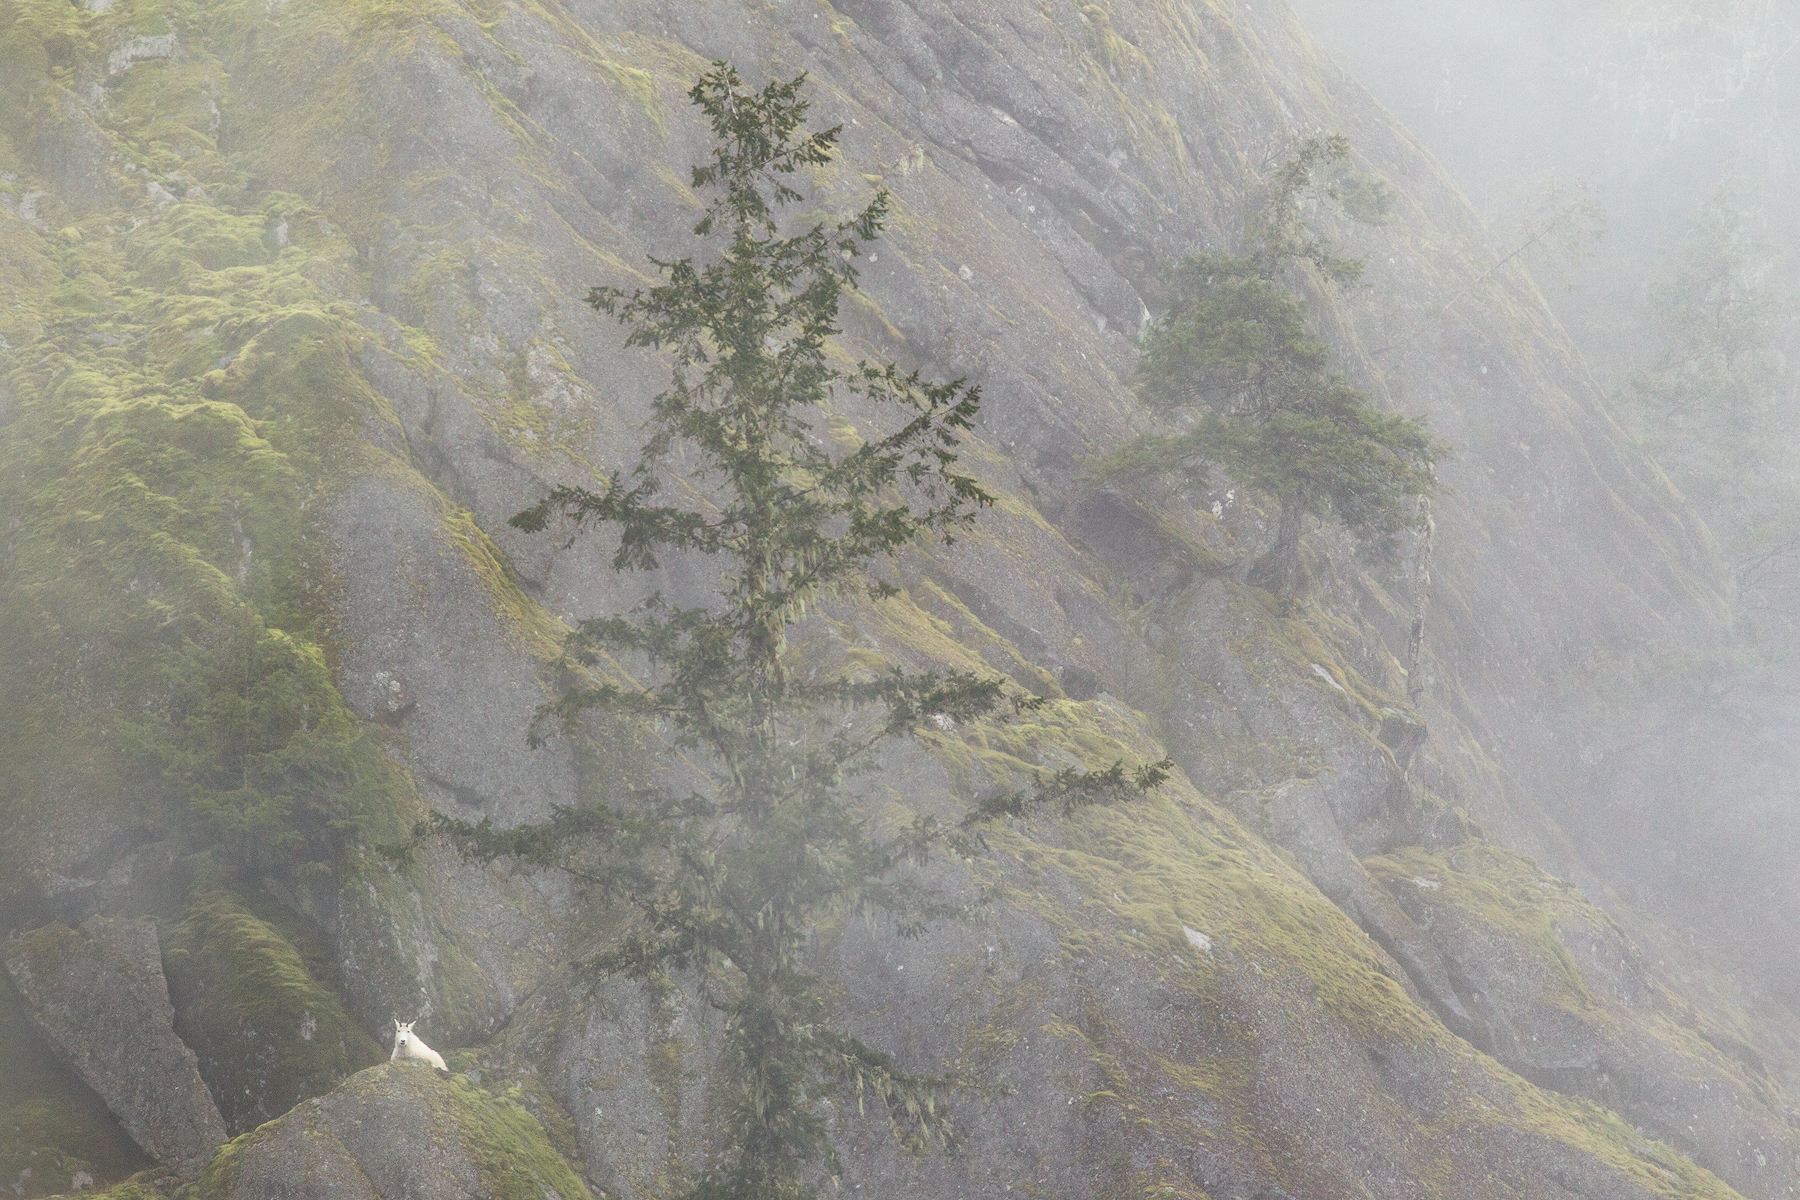 A lone Mountain Goat beds down on a valley bottom bluff in southwest B.C, Canada.  Image ©Connor Stefanison